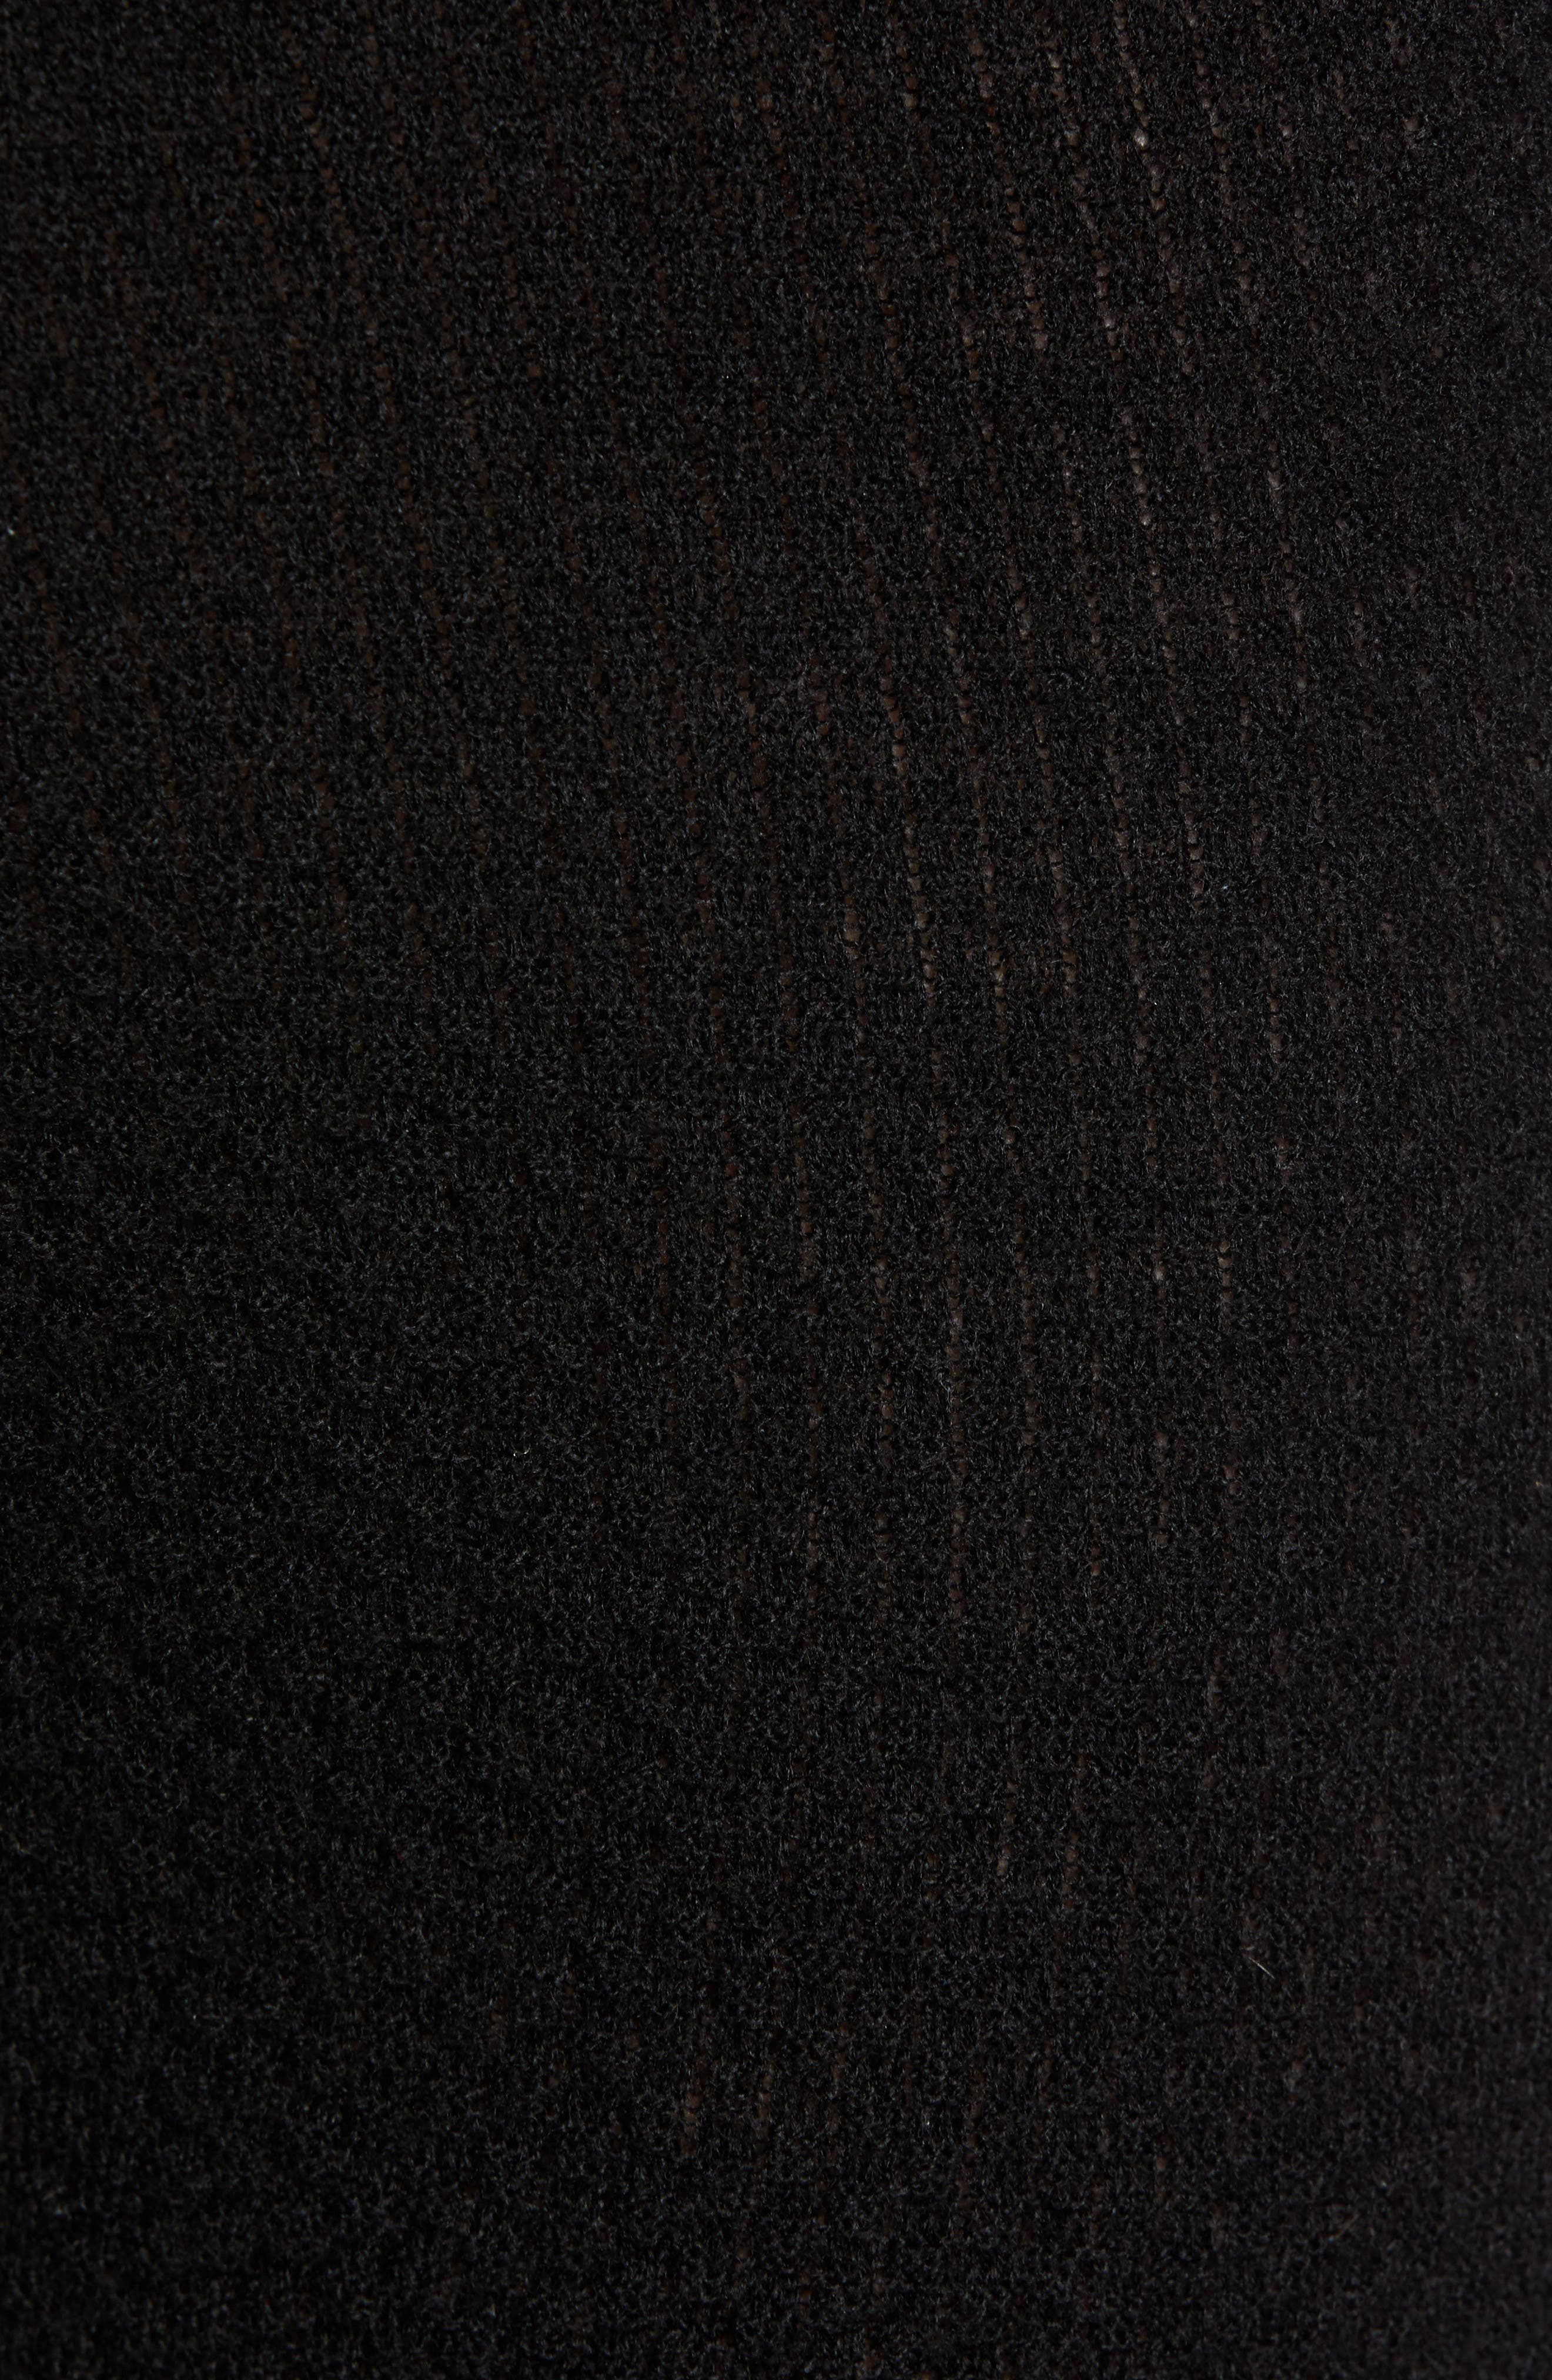 Capilene<sup>®</sup> Thermal Weight Base Layer Pants,                             Alternate thumbnail 5, color,                             BLACK